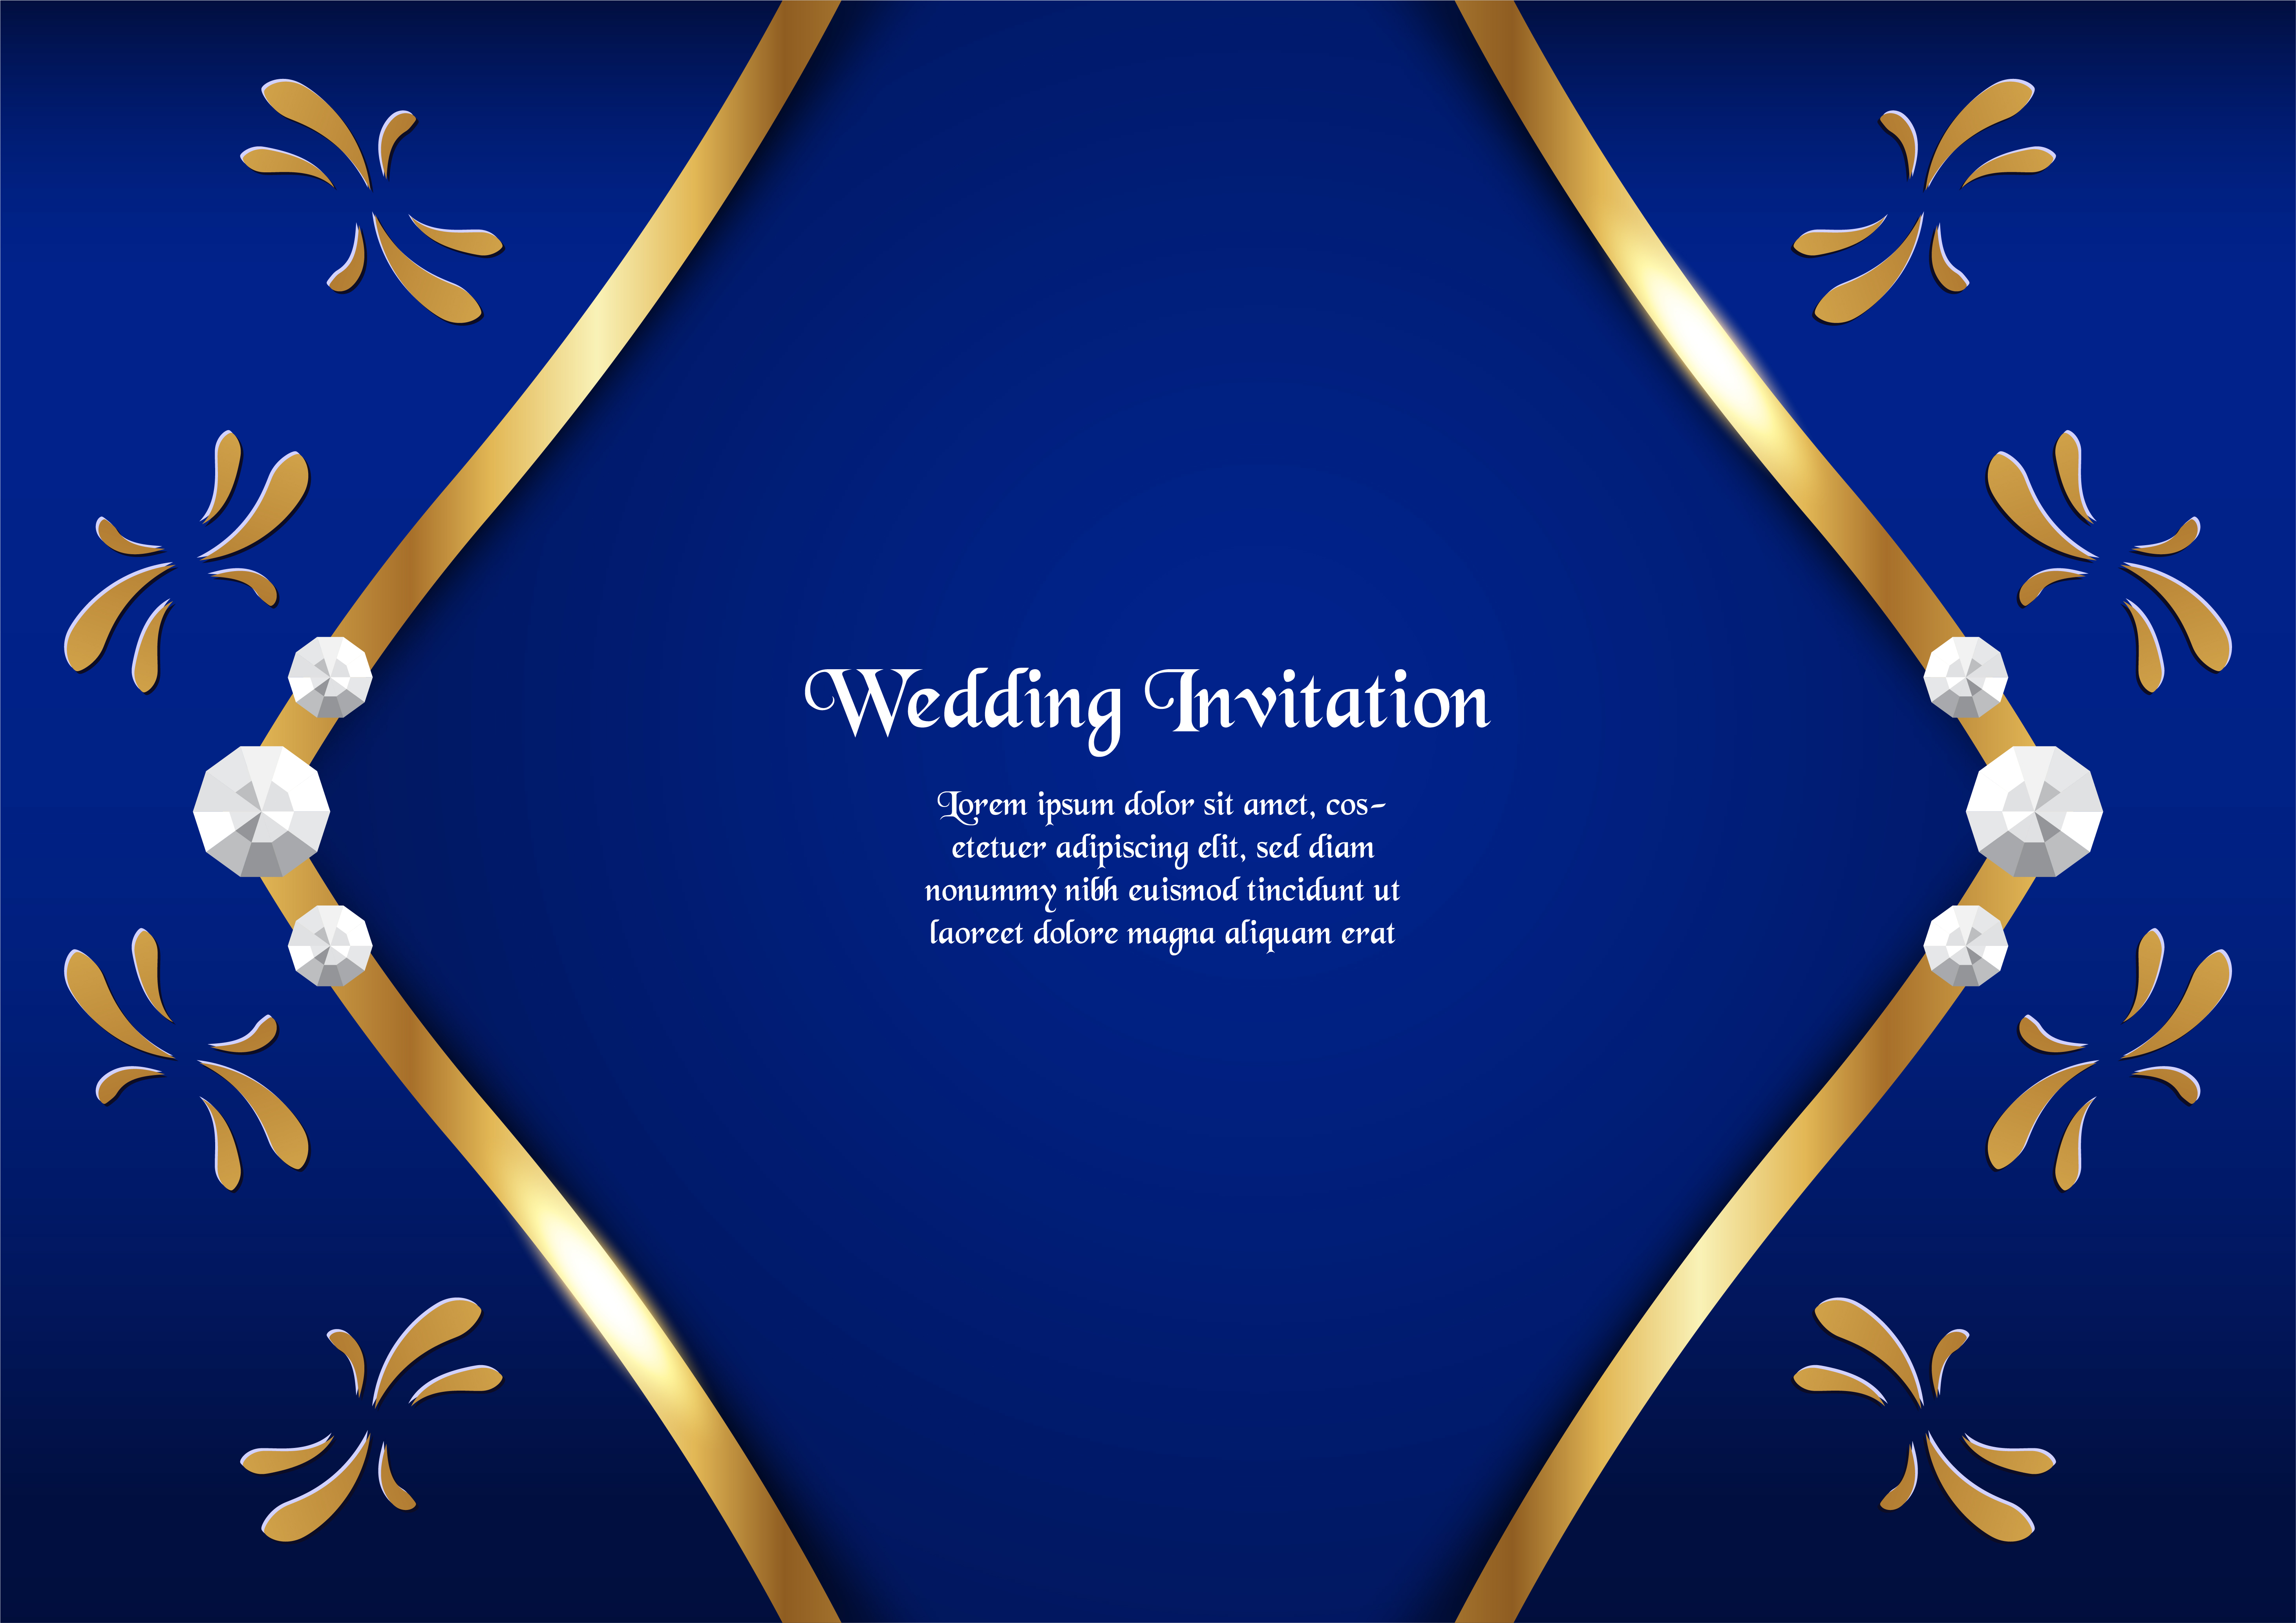 Blue Wedding Invitation Background: Abstract Blue Background In Premium Concept With Golden